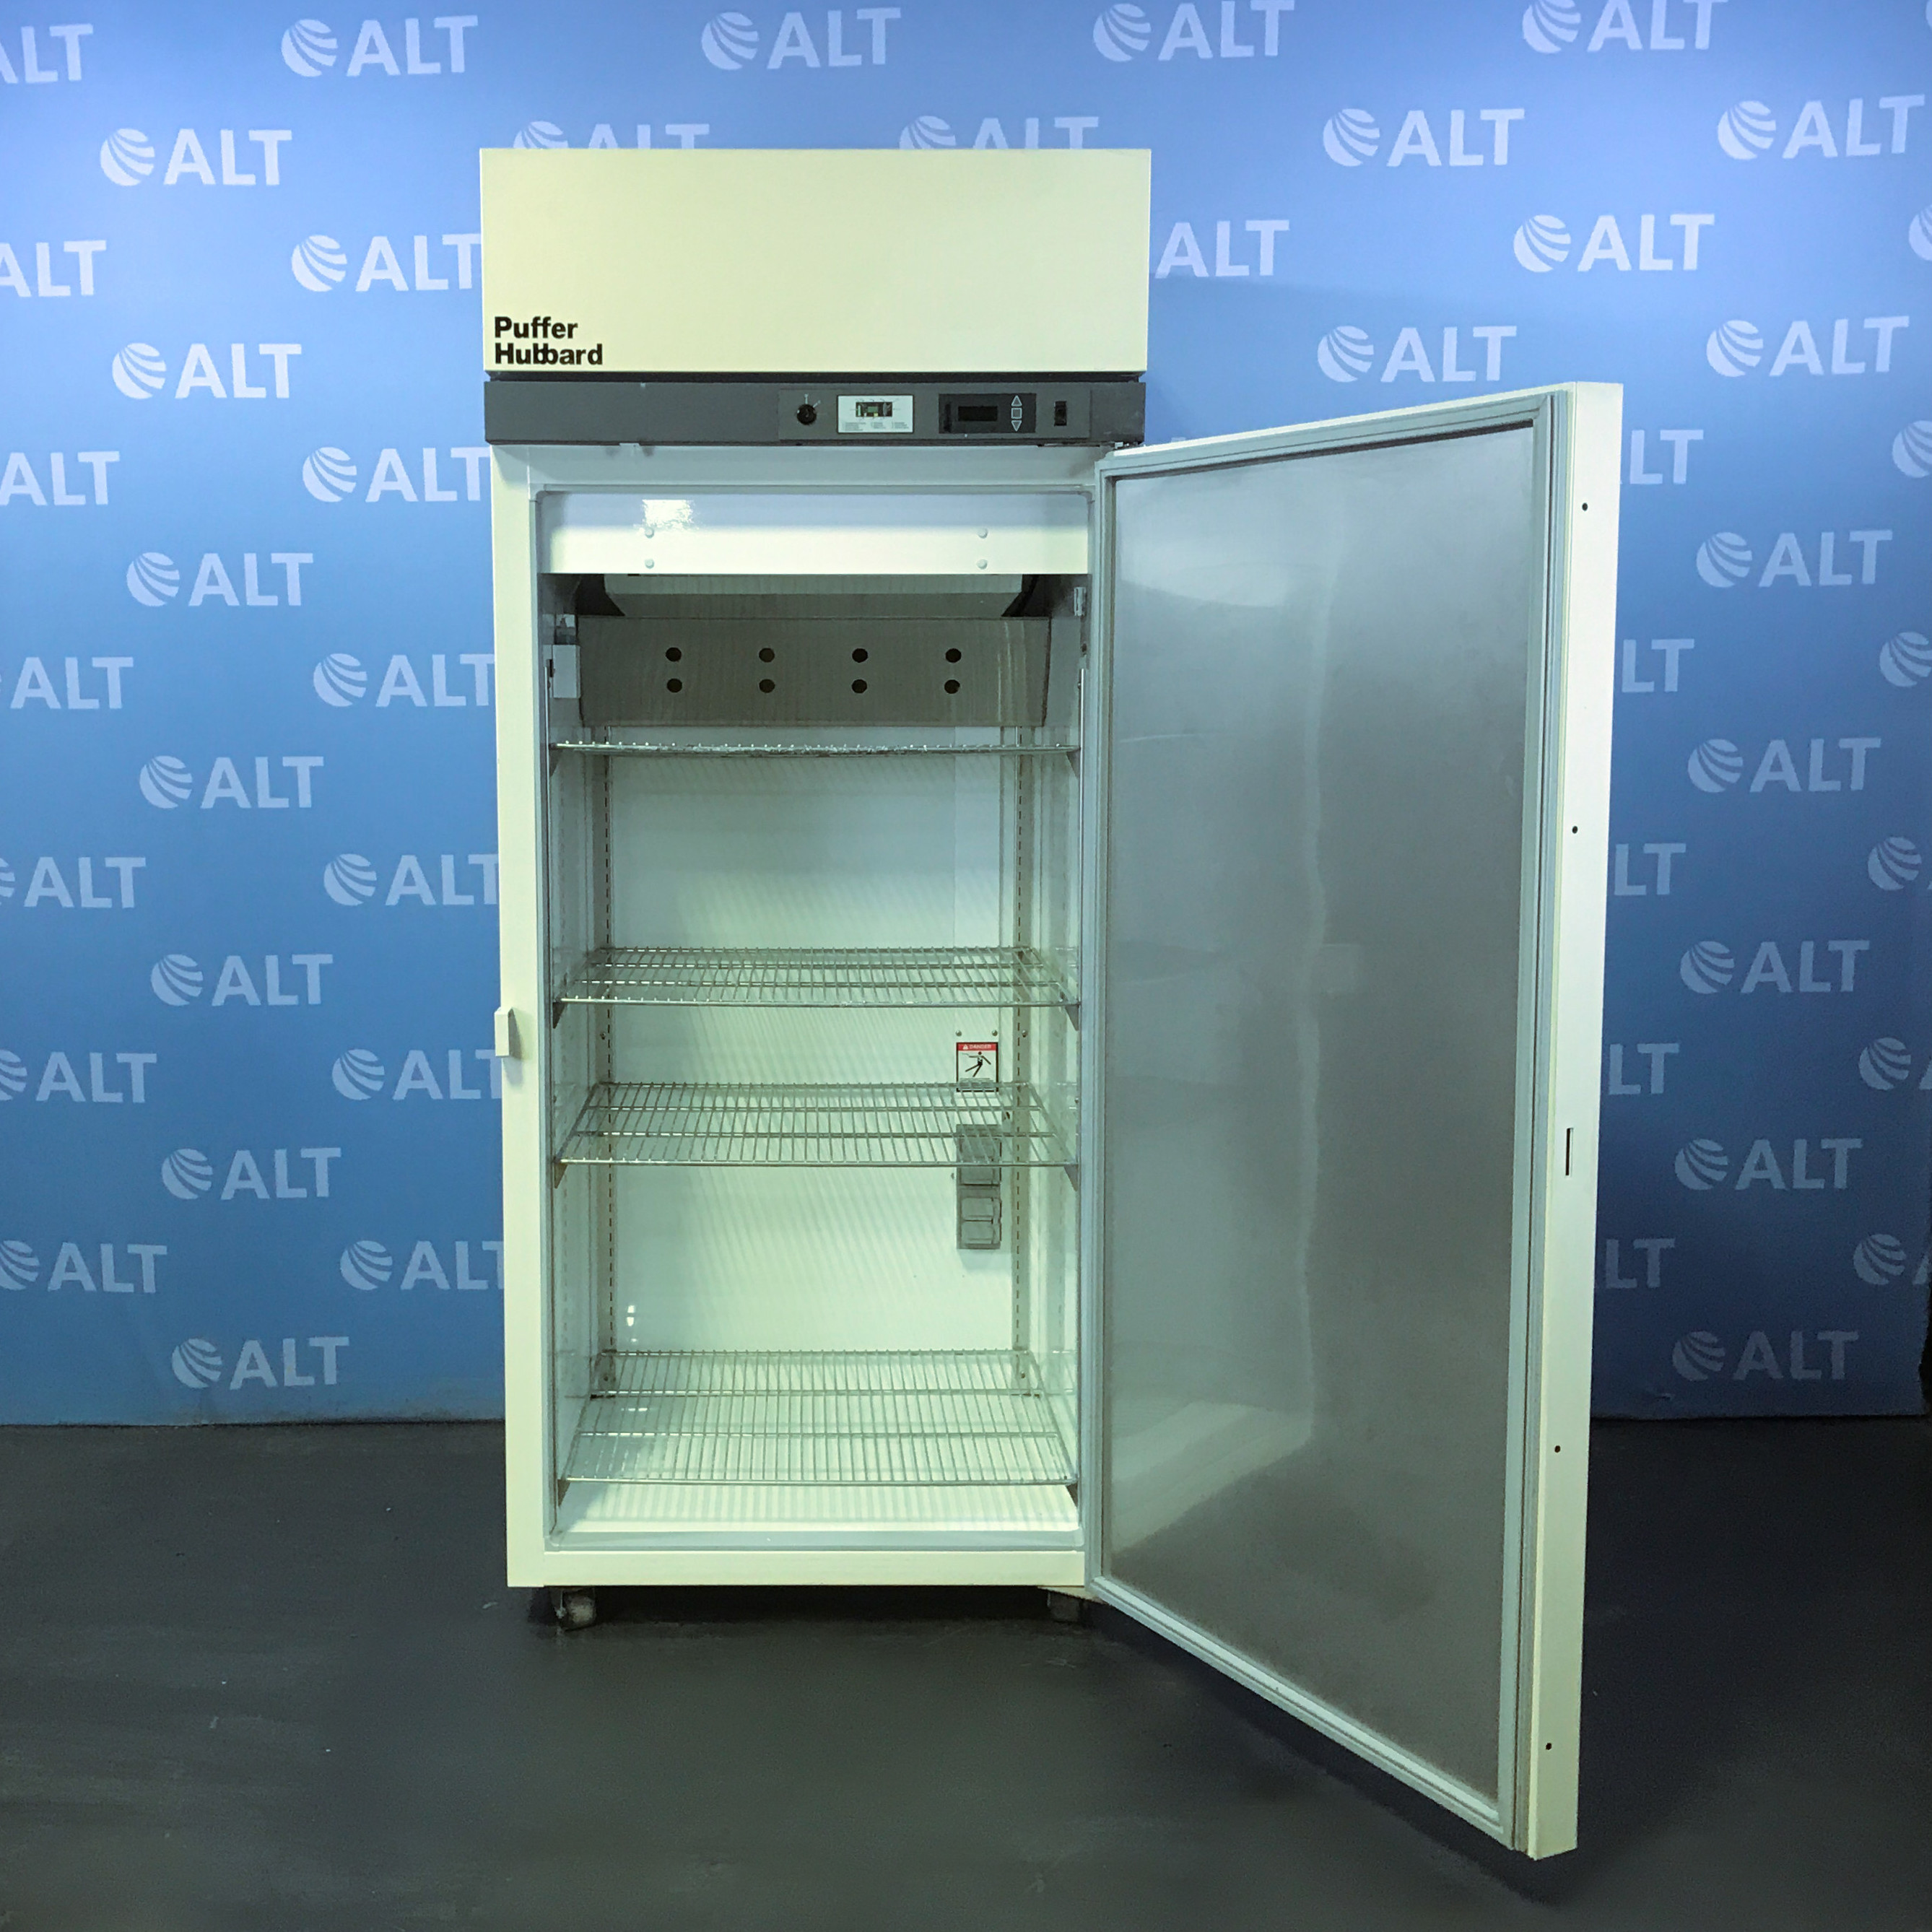 Puffer Hubbard Model LR430D20 General Purpose Laboratory Refrigerator Image